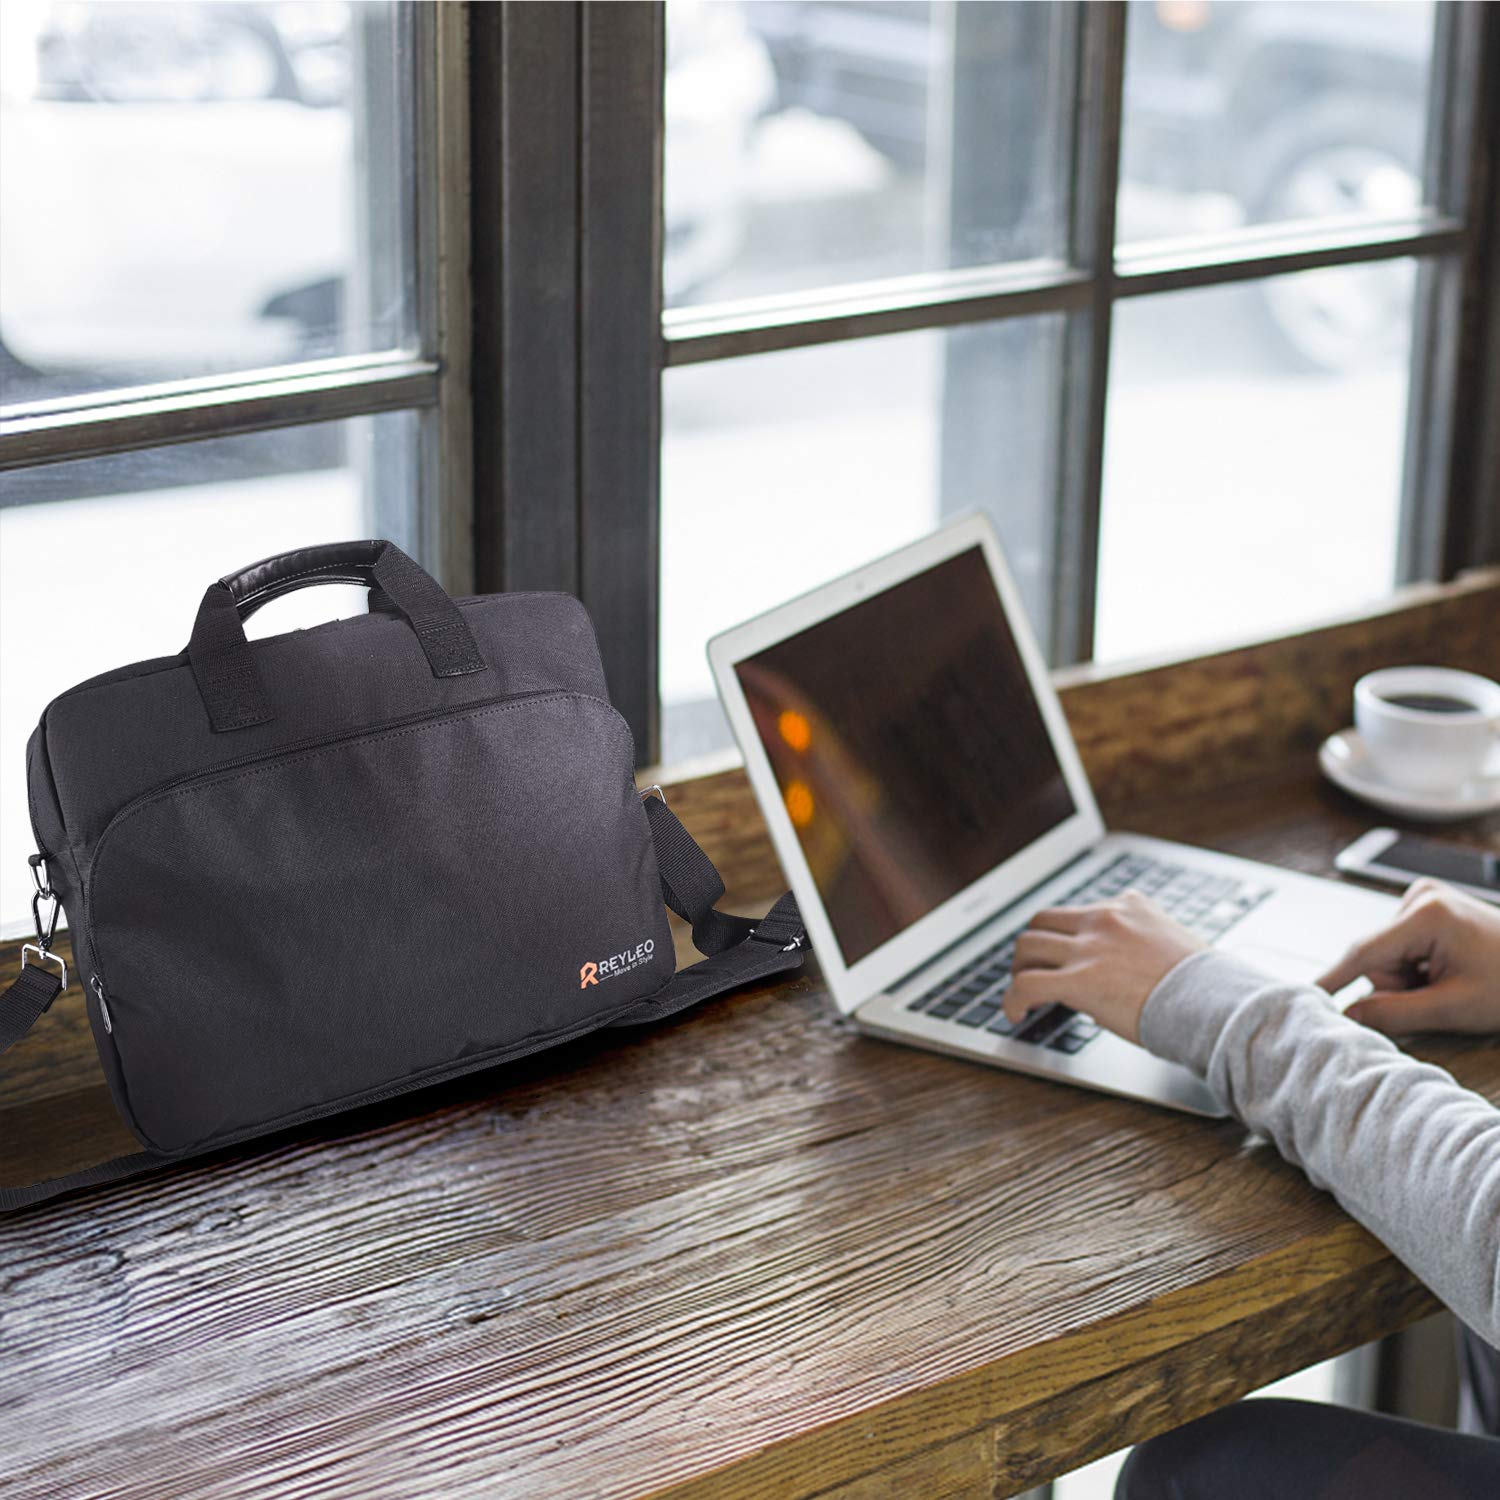 REYLEO 15.6 Inch Laptop Bag Travel Briefcase with Luggage Strap Water Resistant Shoulder Bag Business Messenger Briefcases for Men and Women Fits Laptop Computer Tablet, LCB1B by REYLEO (Image #7)